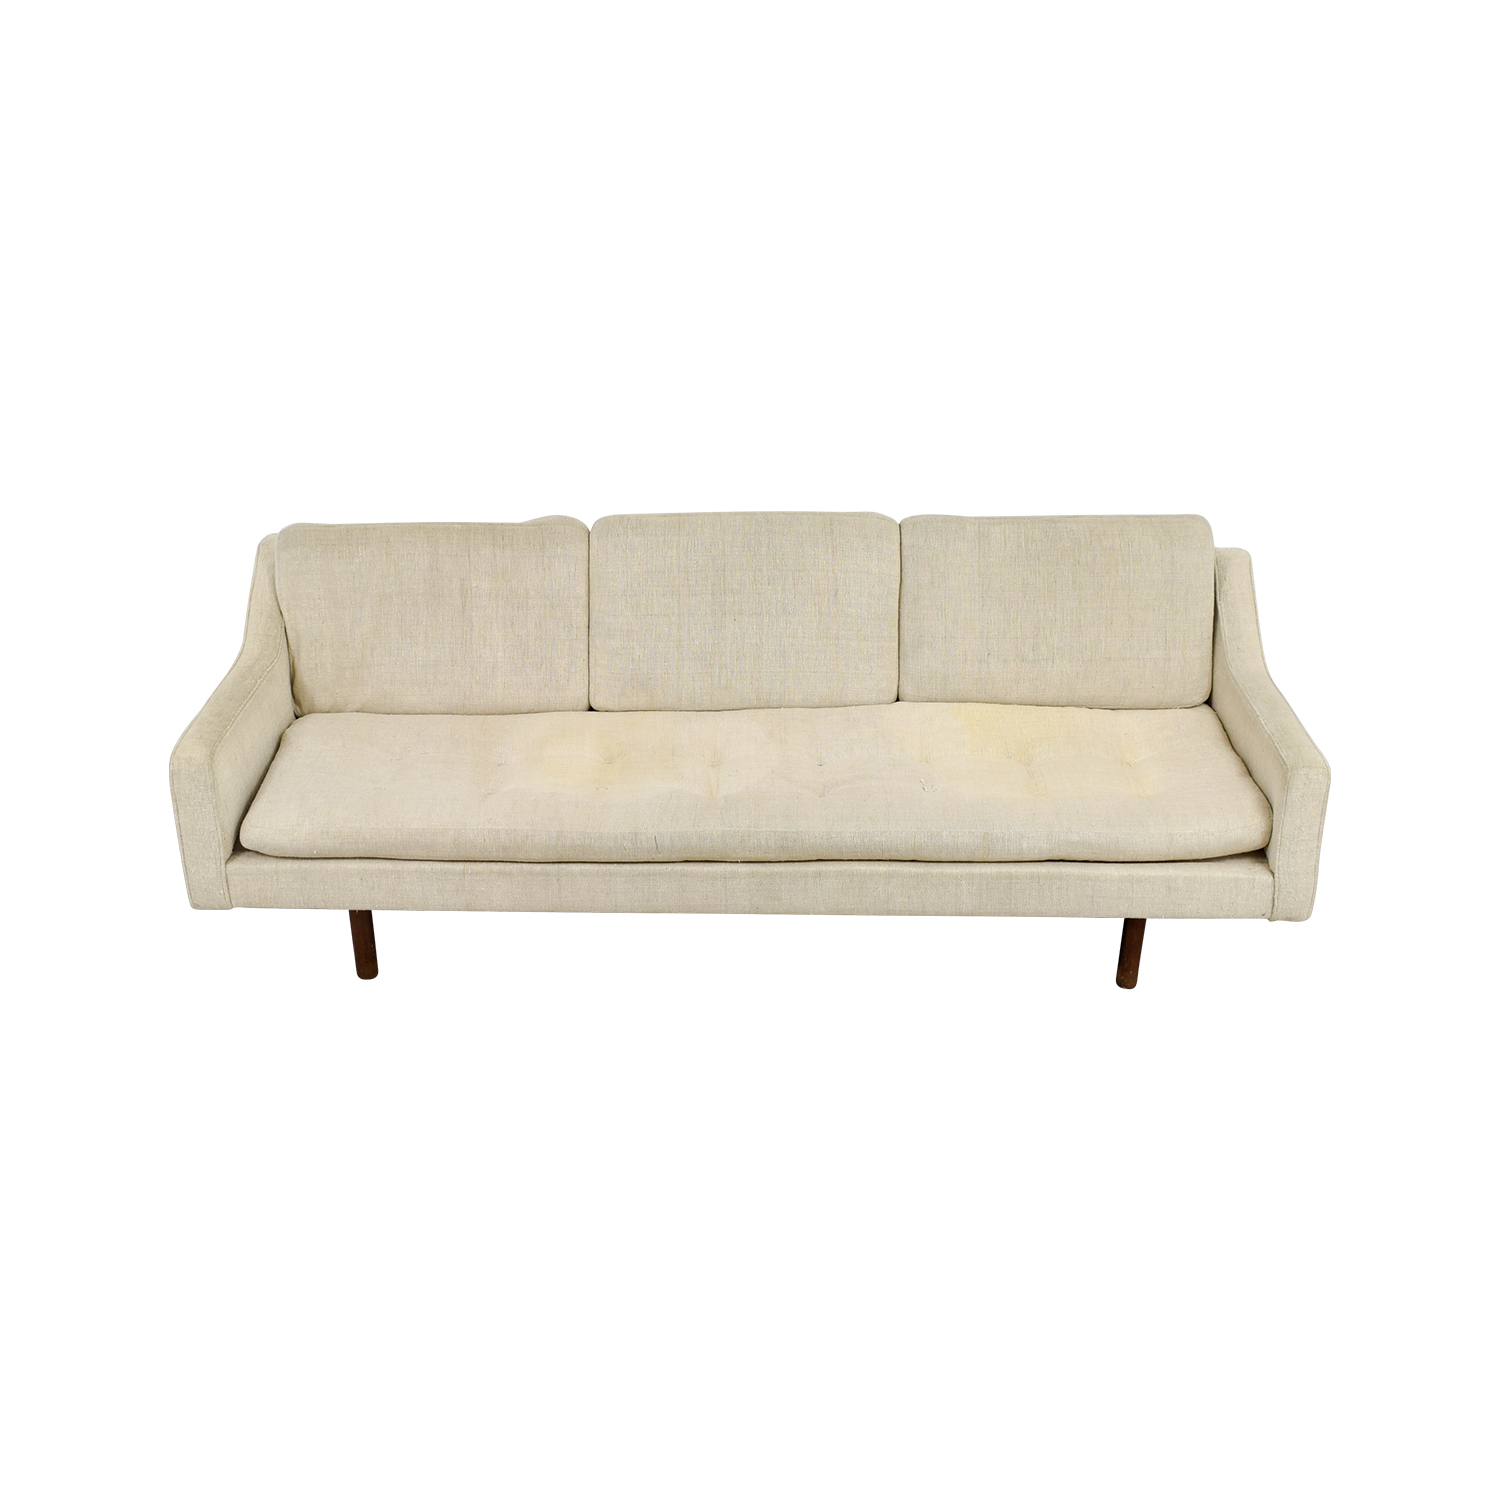 Exceptionnel ... Buy Vintage Mid Century White Single Cushion Sofa Classic Sofas ...